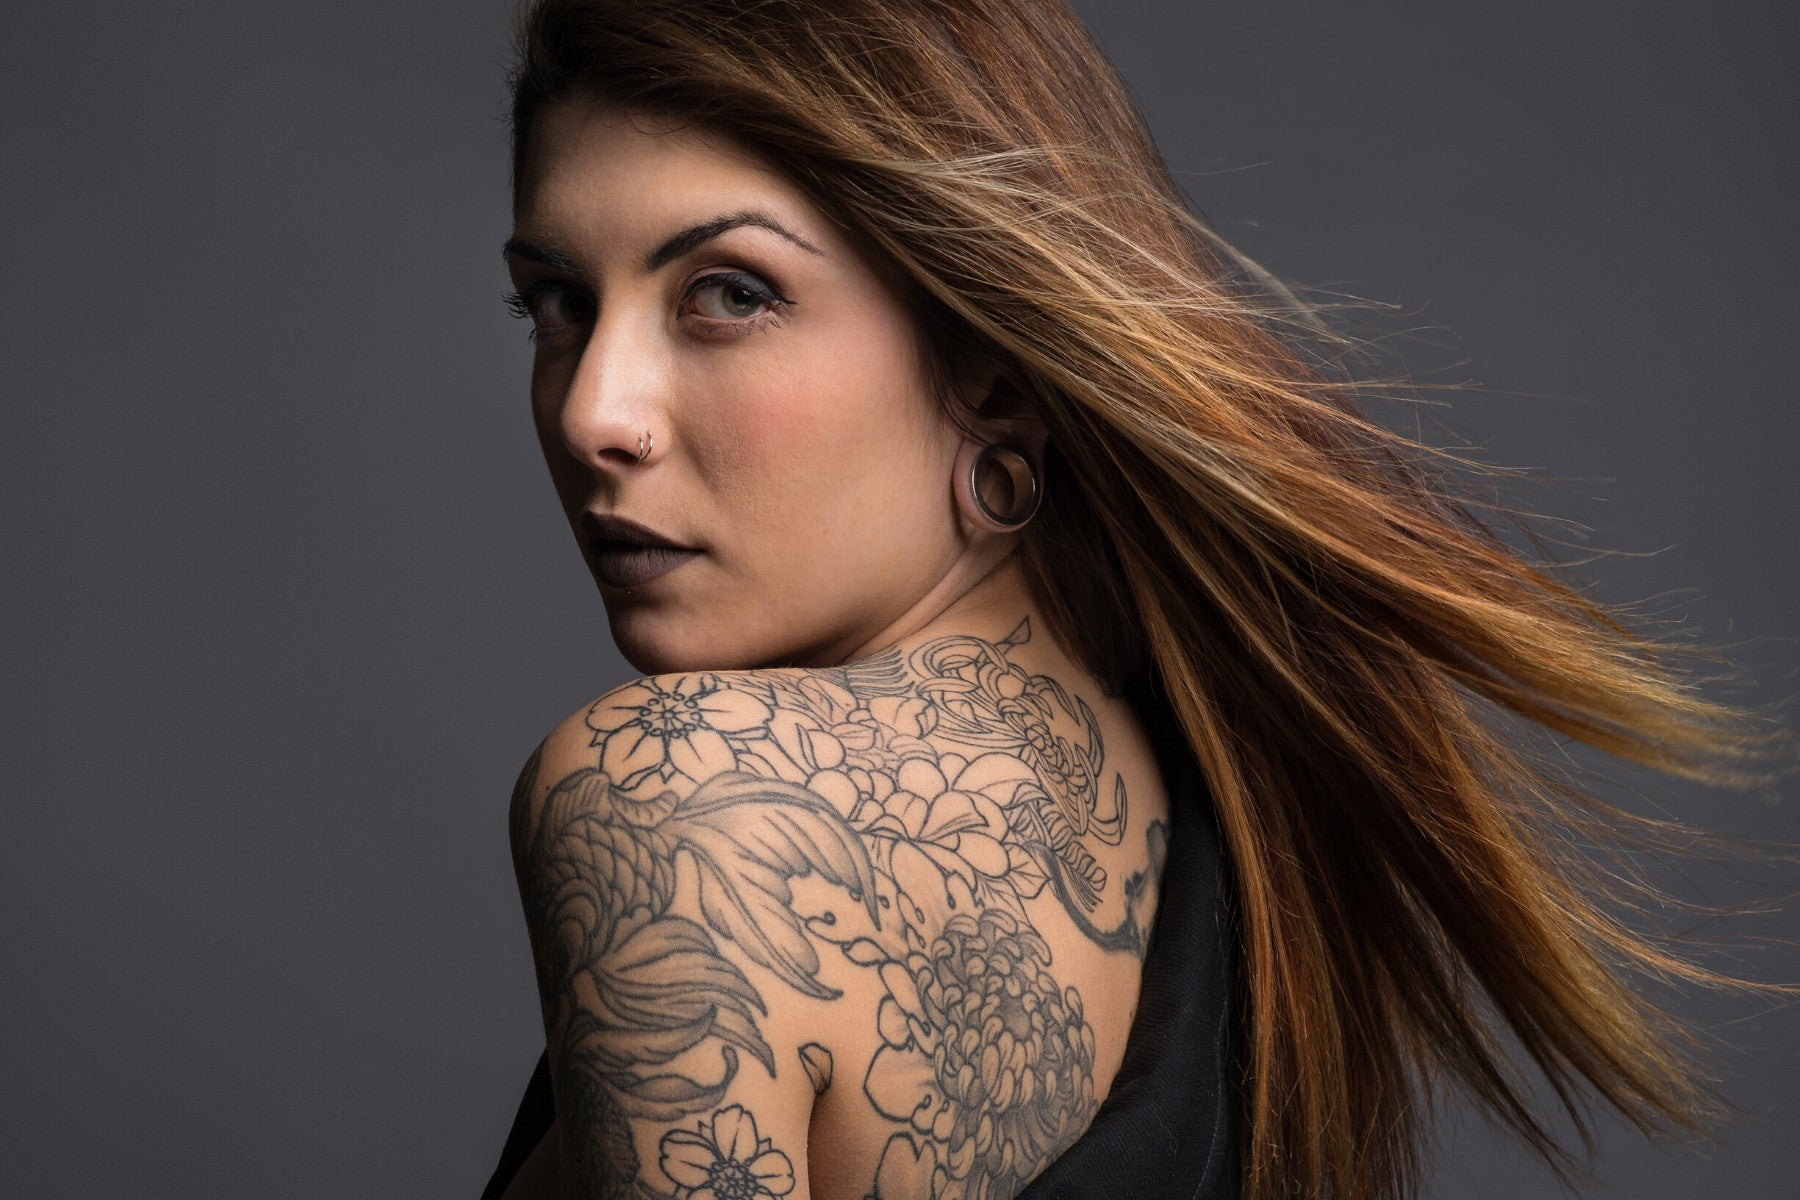 Attractive brunette girl with a full back and shoulder floral design black tattoos